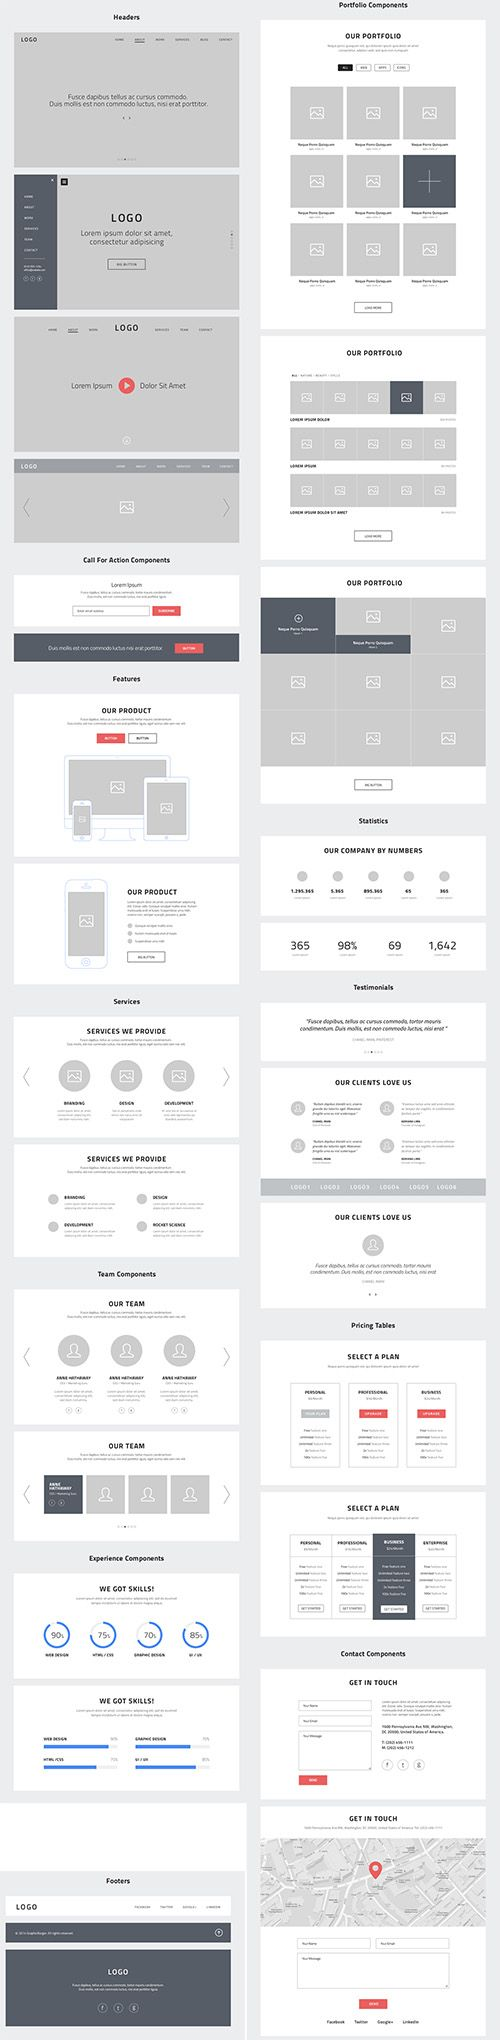 PSD Web Design - One Page Website Wireframes